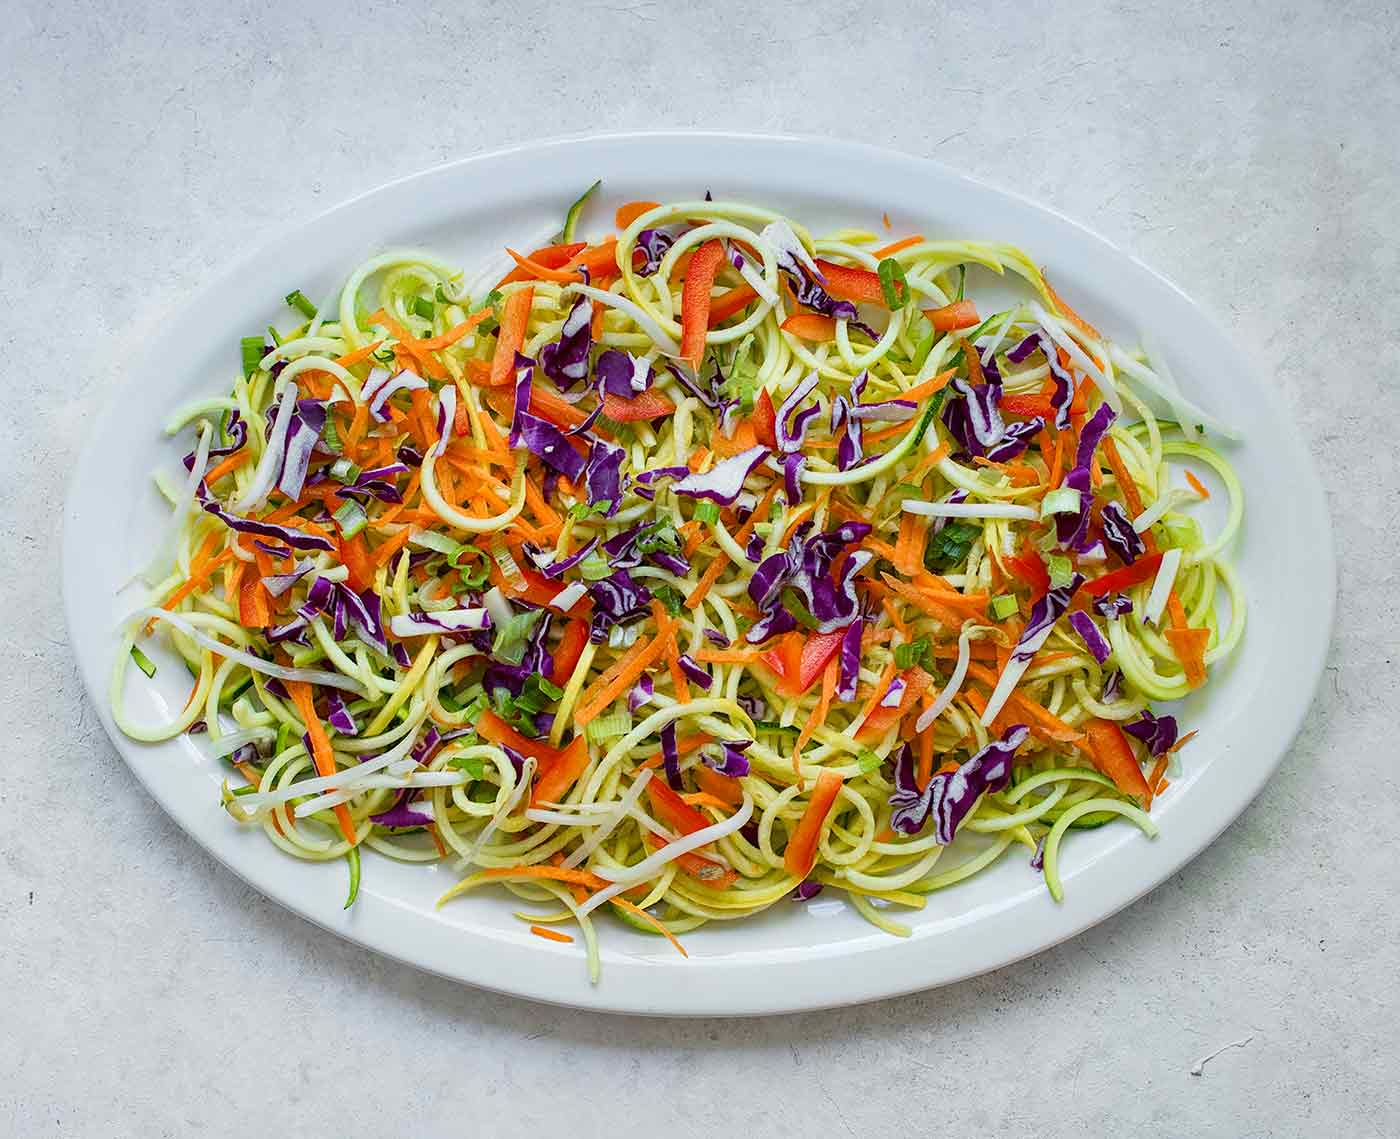 A platter of spiralized veggies for Rainbow Pad Thai